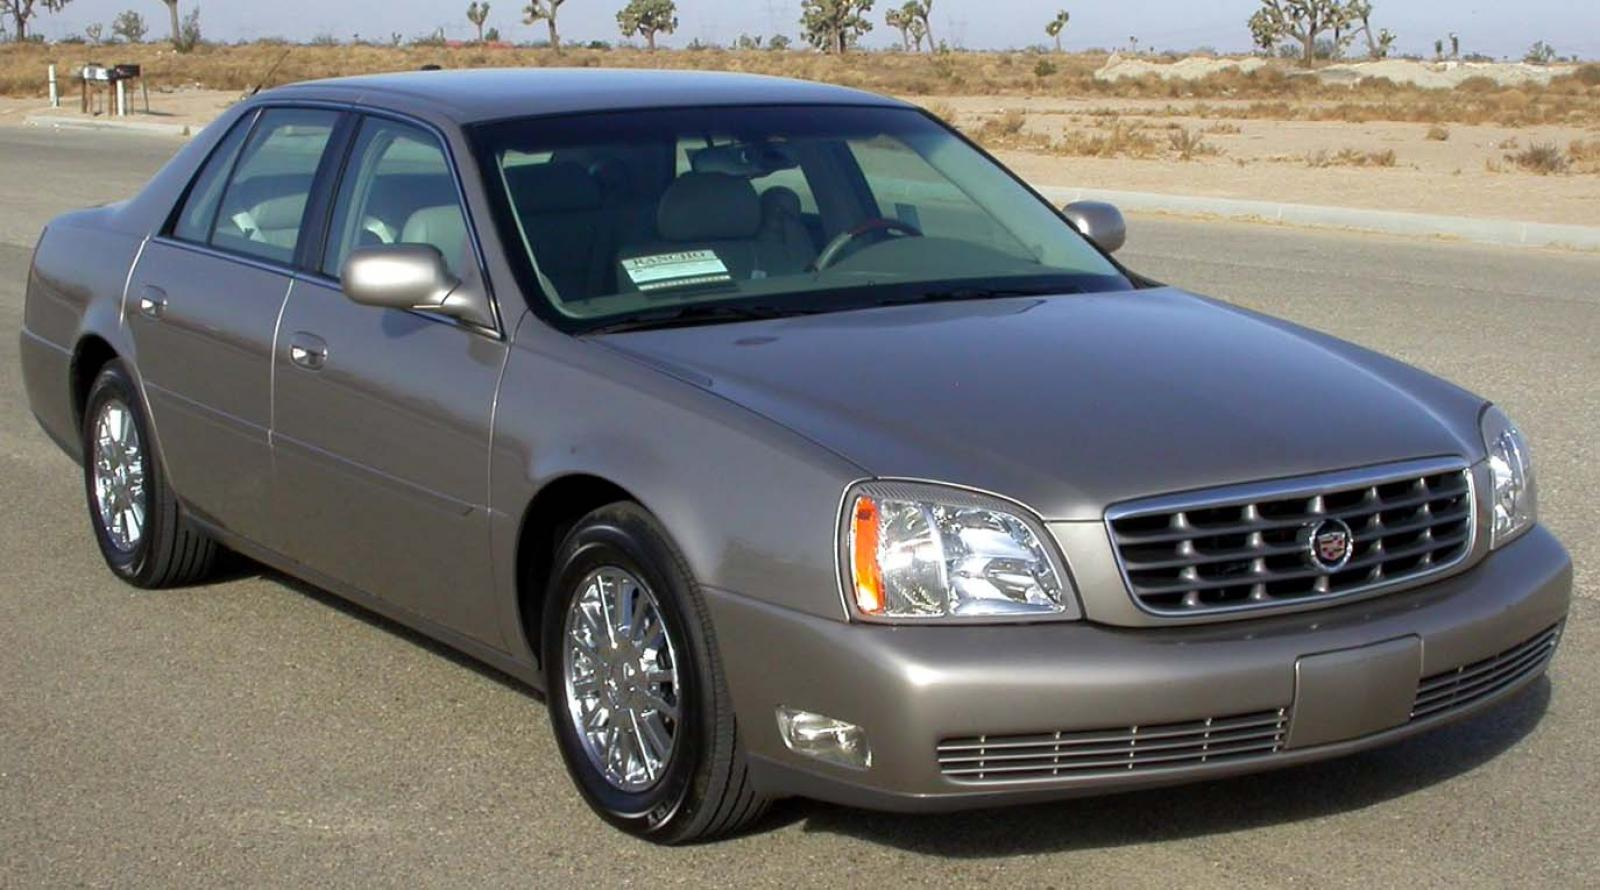 2004 Cadillac Seville - Information and photos - ZombieDrive